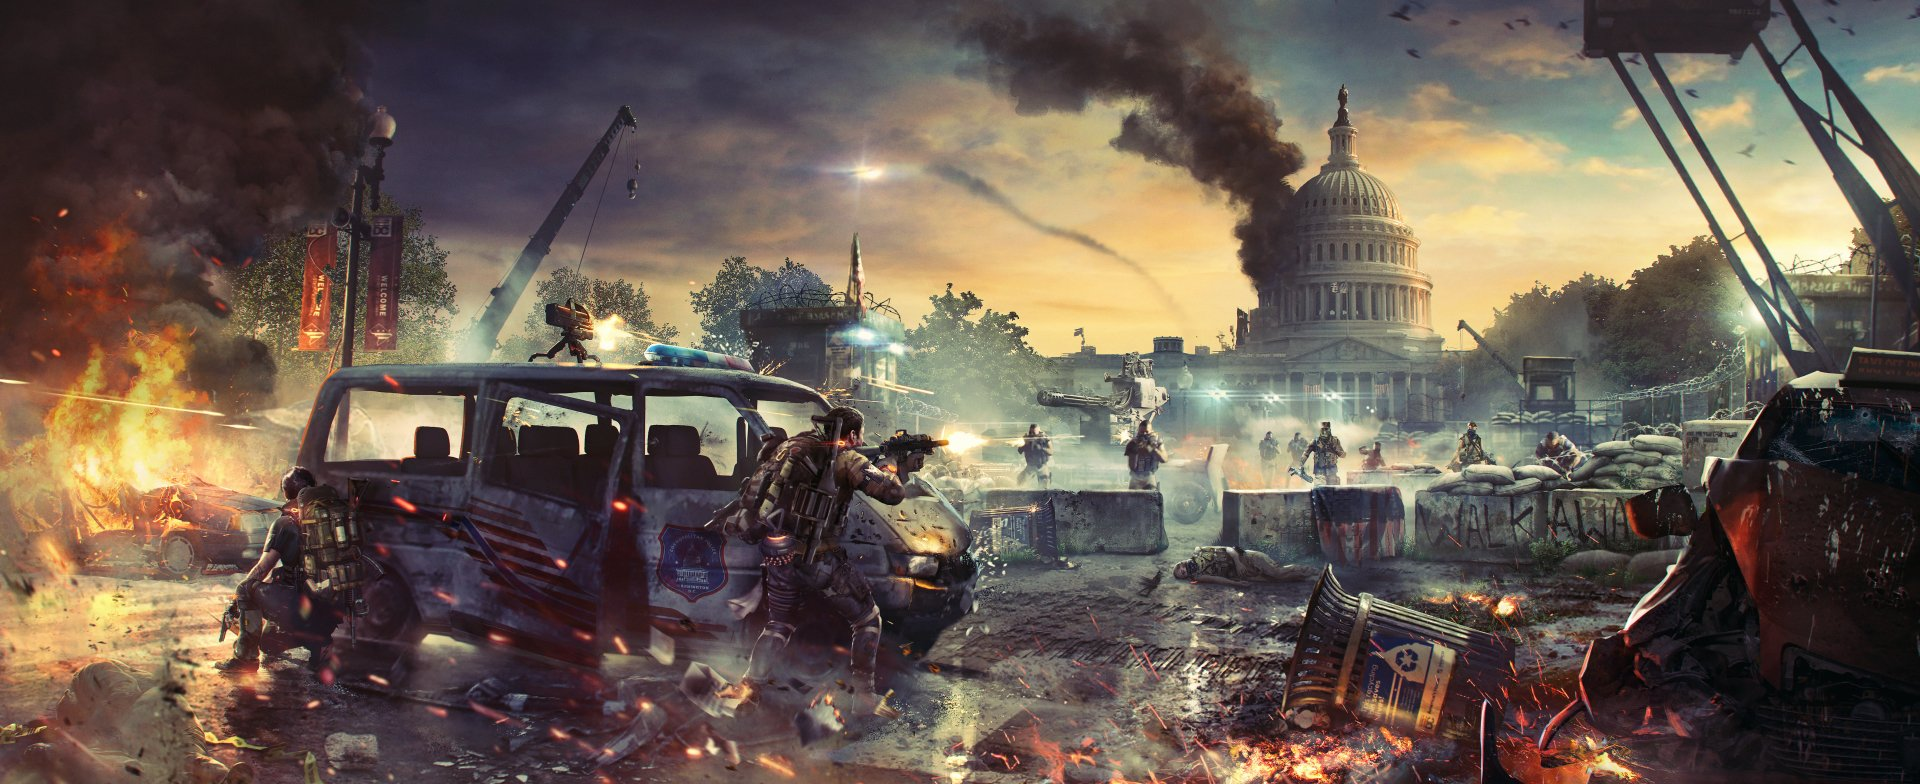 77 Tom Clancy S The Division 2 Hd Wallpapers Background Images